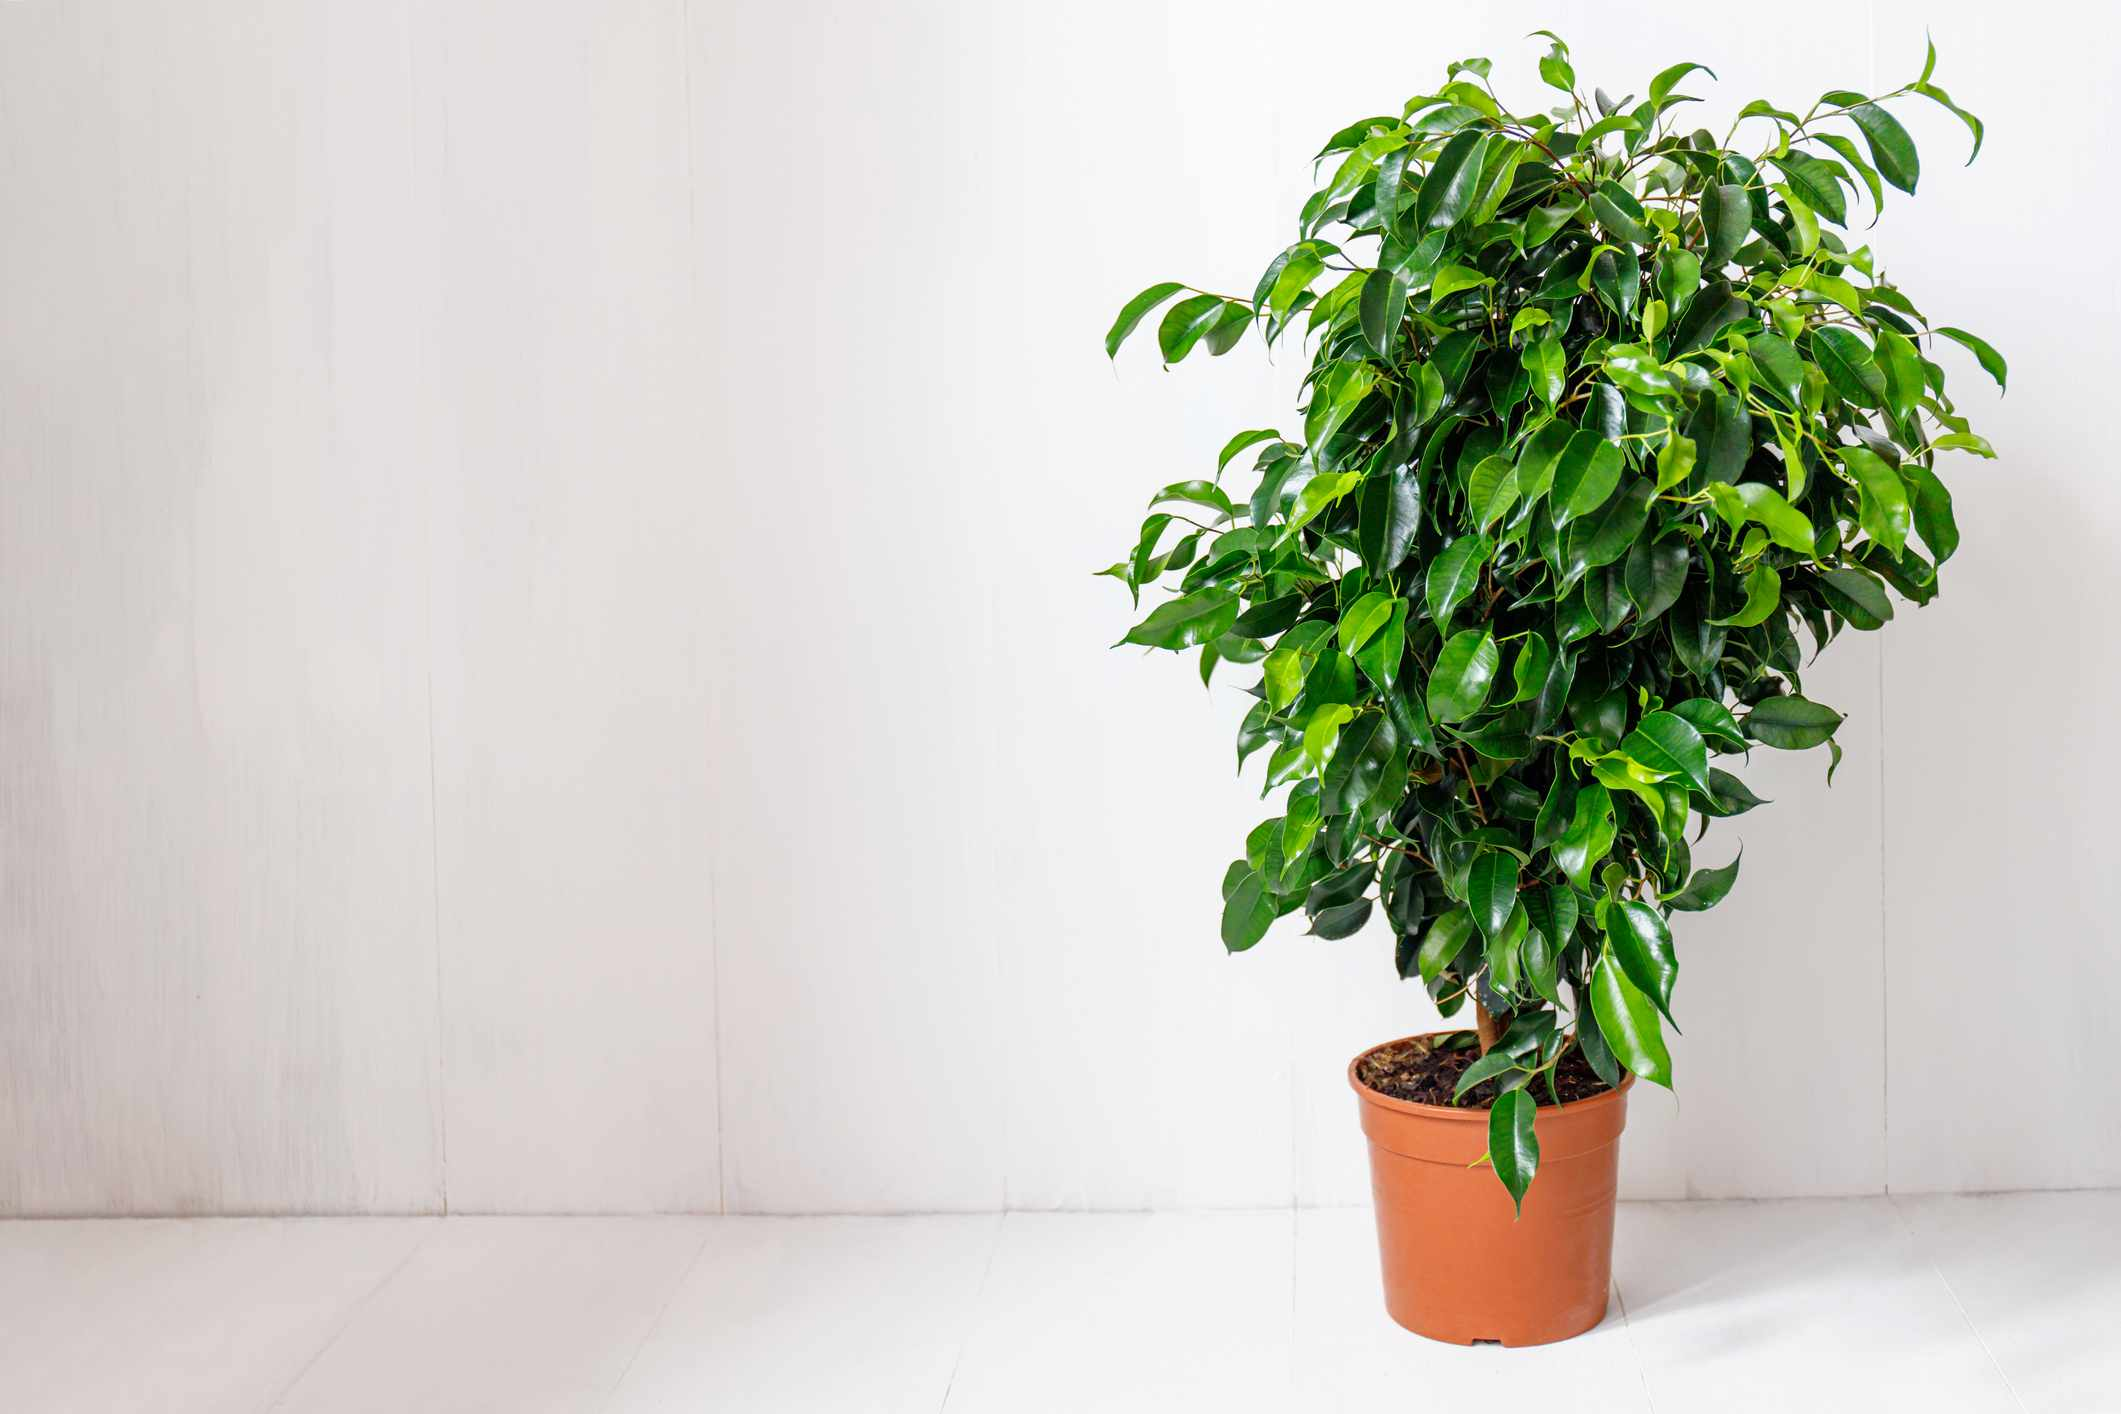 Ficus benjamina (weeping fig) against a white wall.